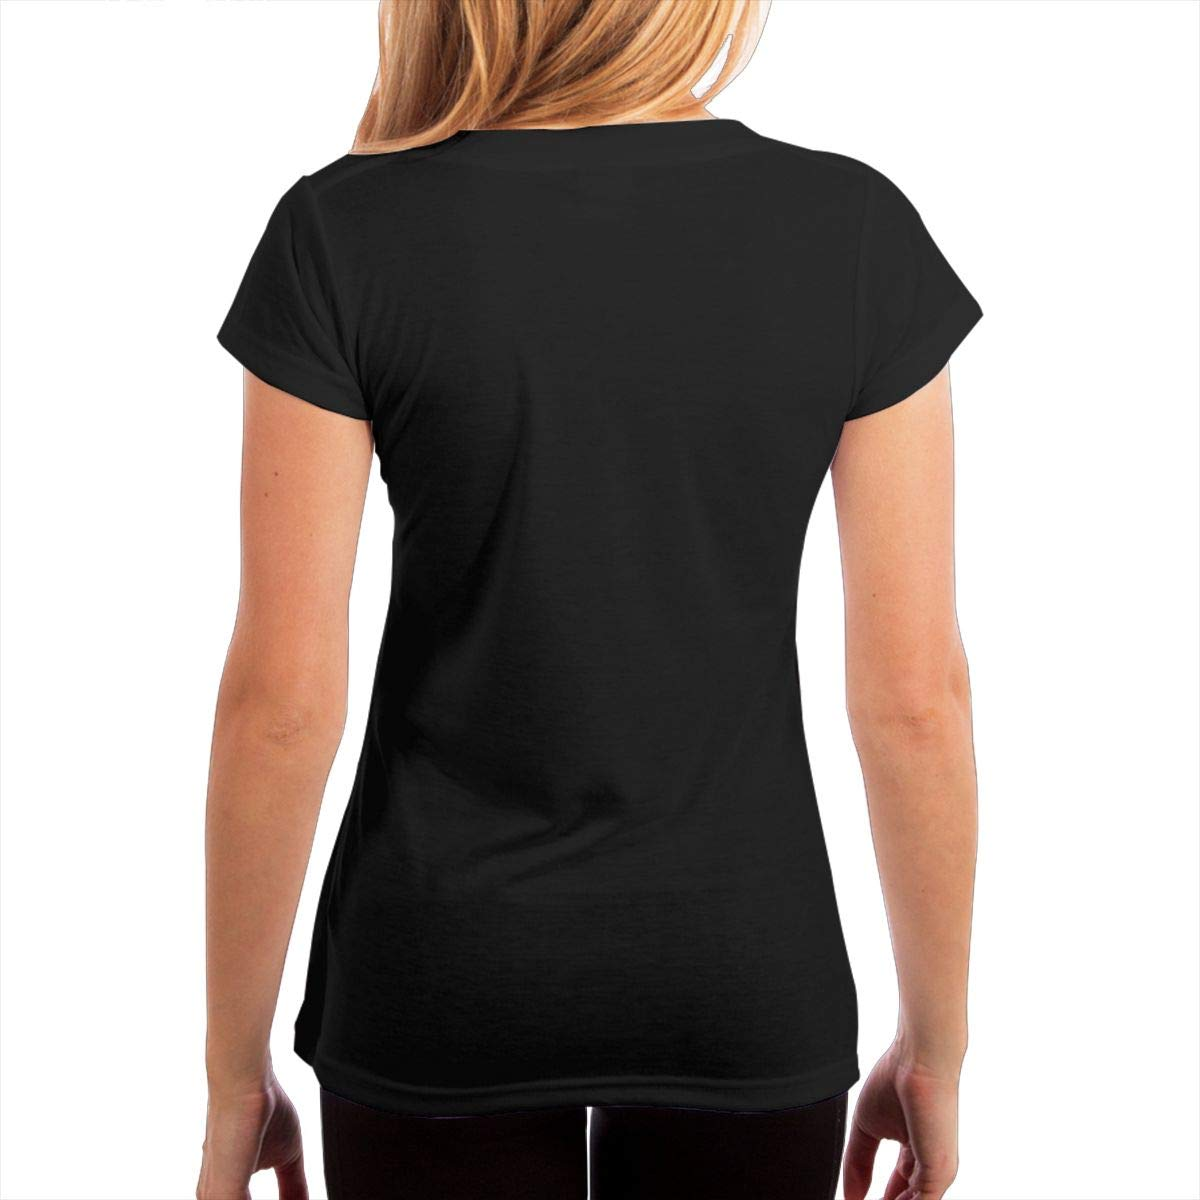 F2018GBi Army Military Police Afghanistan Womens Short-Sleeve V Neck T-Shirt